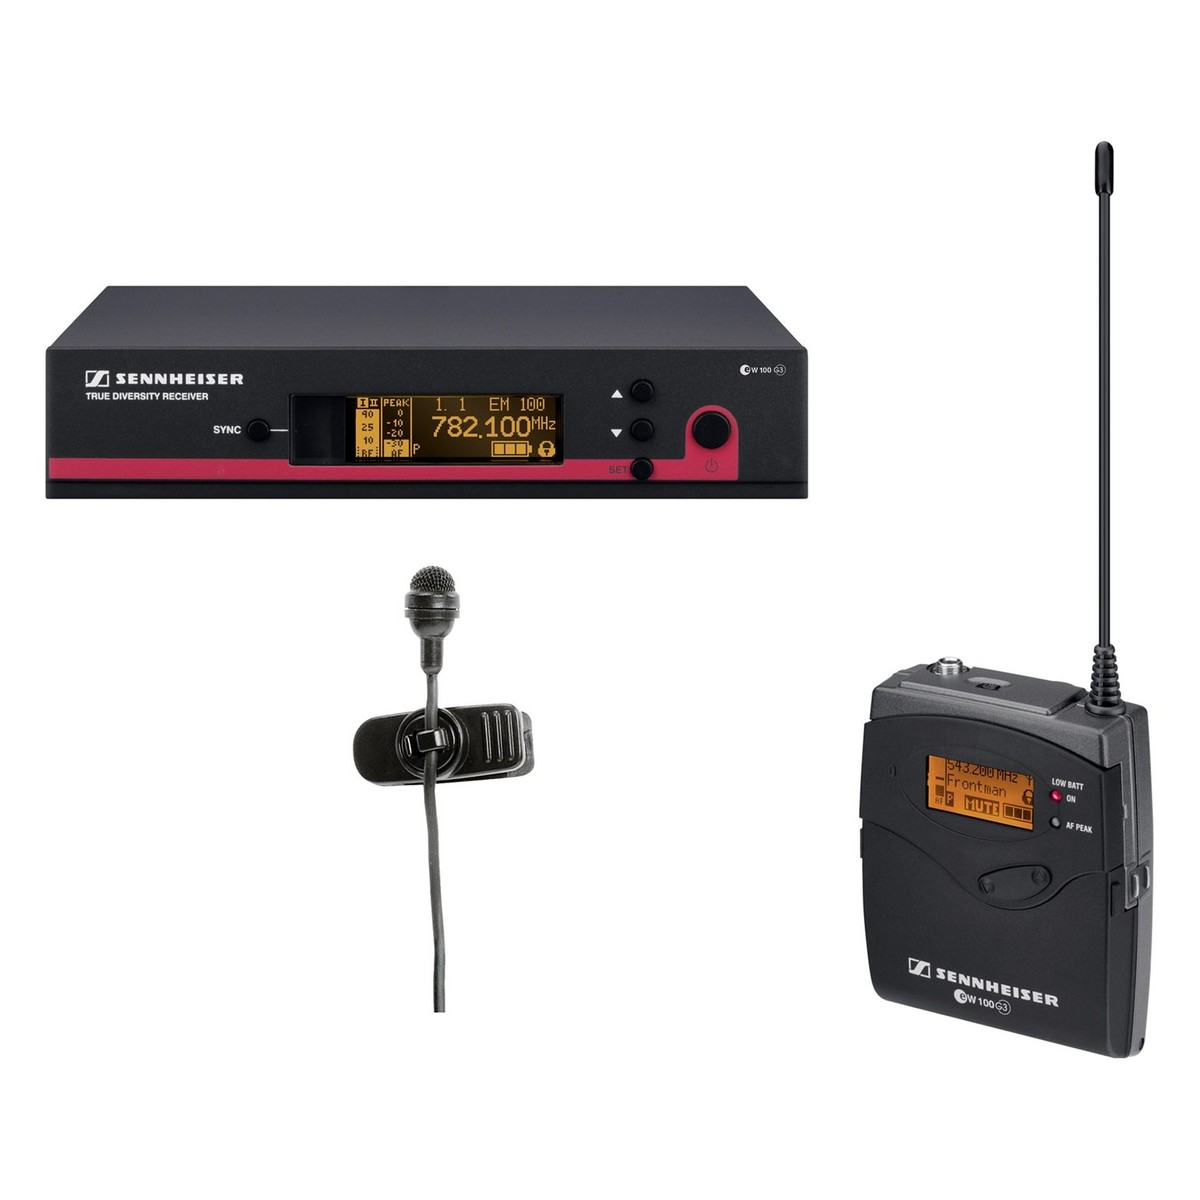 sennheiser ew 122 e g3 wireless lavalier microphone system at gear4music. Black Bedroom Furniture Sets. Home Design Ideas